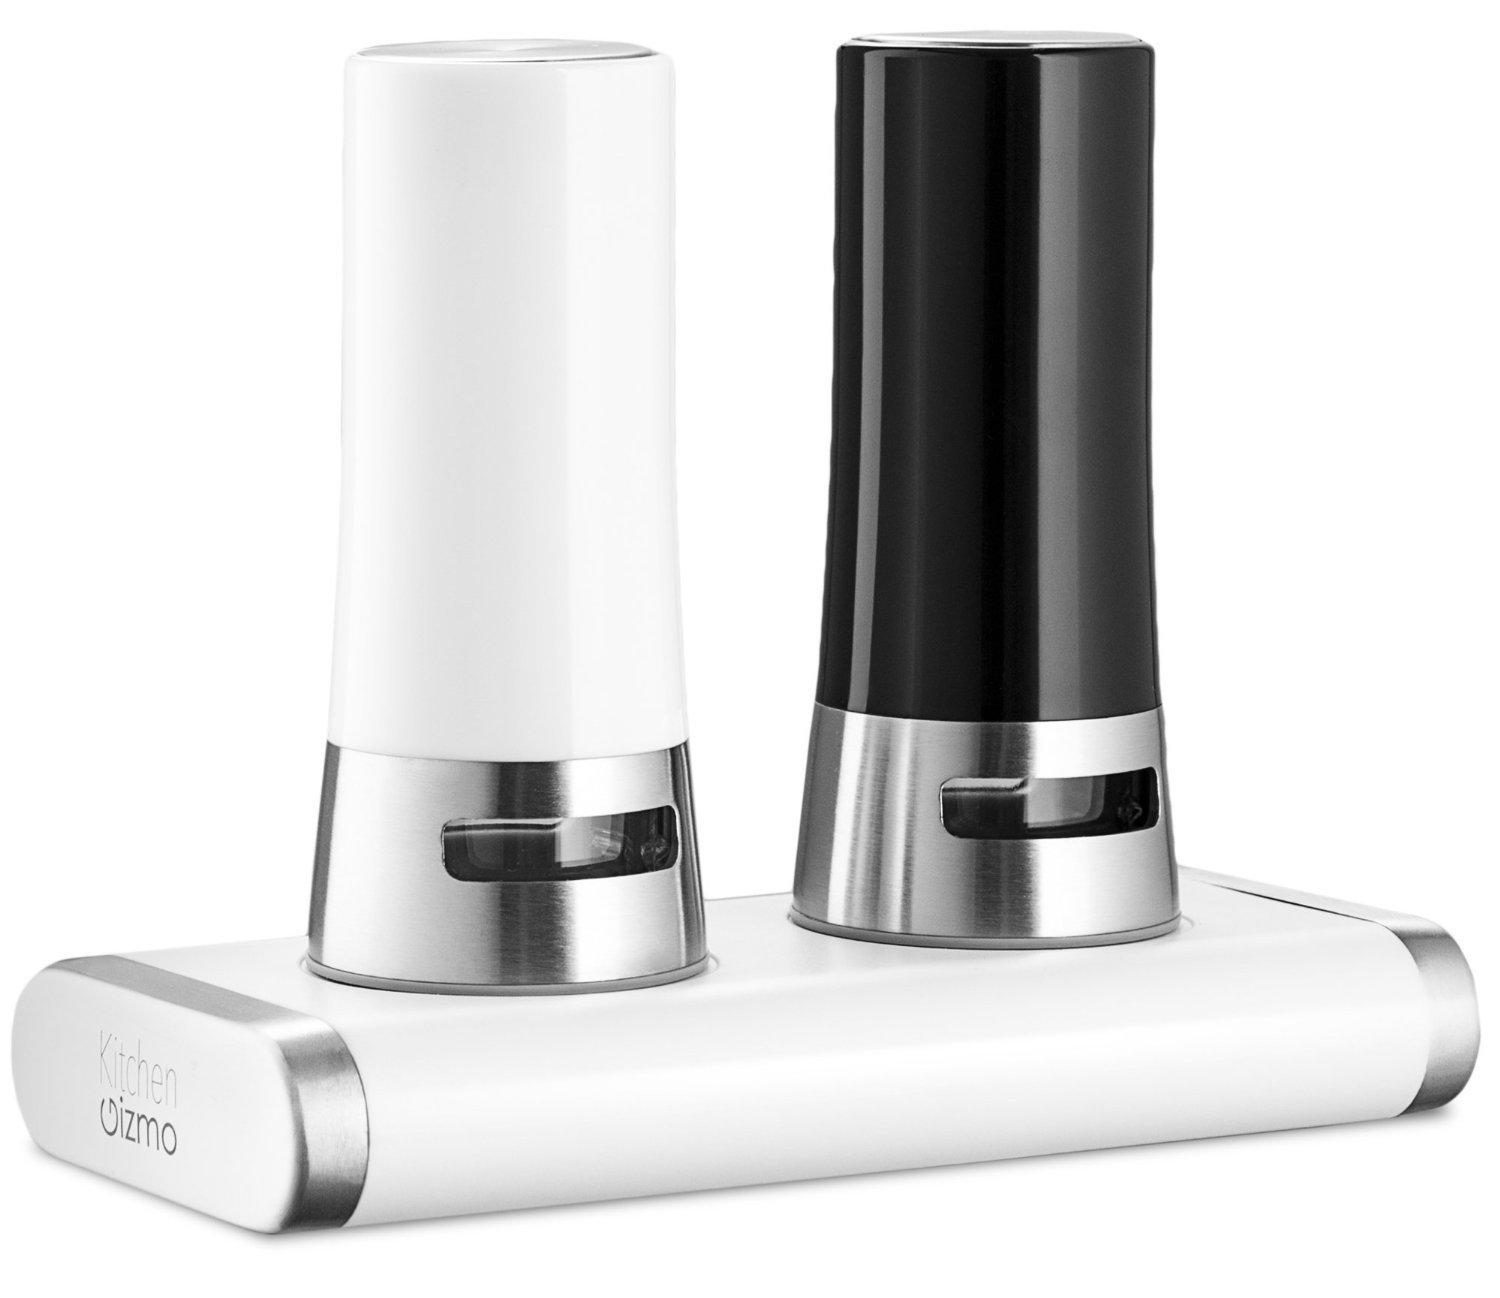 """<a href=""""https://www.amazon.com/Kitchen-Gizmo-Magnetic-Pepper-Shaker/dp/B014HQCXC0/ref=gbps_img_m-6_ccd9_cde02538?smid=A13KONT7UBBZUD&pf_rd_p=dd463074-1229-4646-9e94-31c3ab9fccd9&pf_rd_s=merchandised-search-6&pf_rd_t=101&pf_rd_i=11844796011&pf_rd_m=ATVPDKIKX0DER&pf_rd_r=NGAY5FXRQG8BCBTCB7XJ"""" target=""""_blank"""">Magnetic Salt and Pepper Shaker Set</a>,($11.98 orig. $19.99)"""